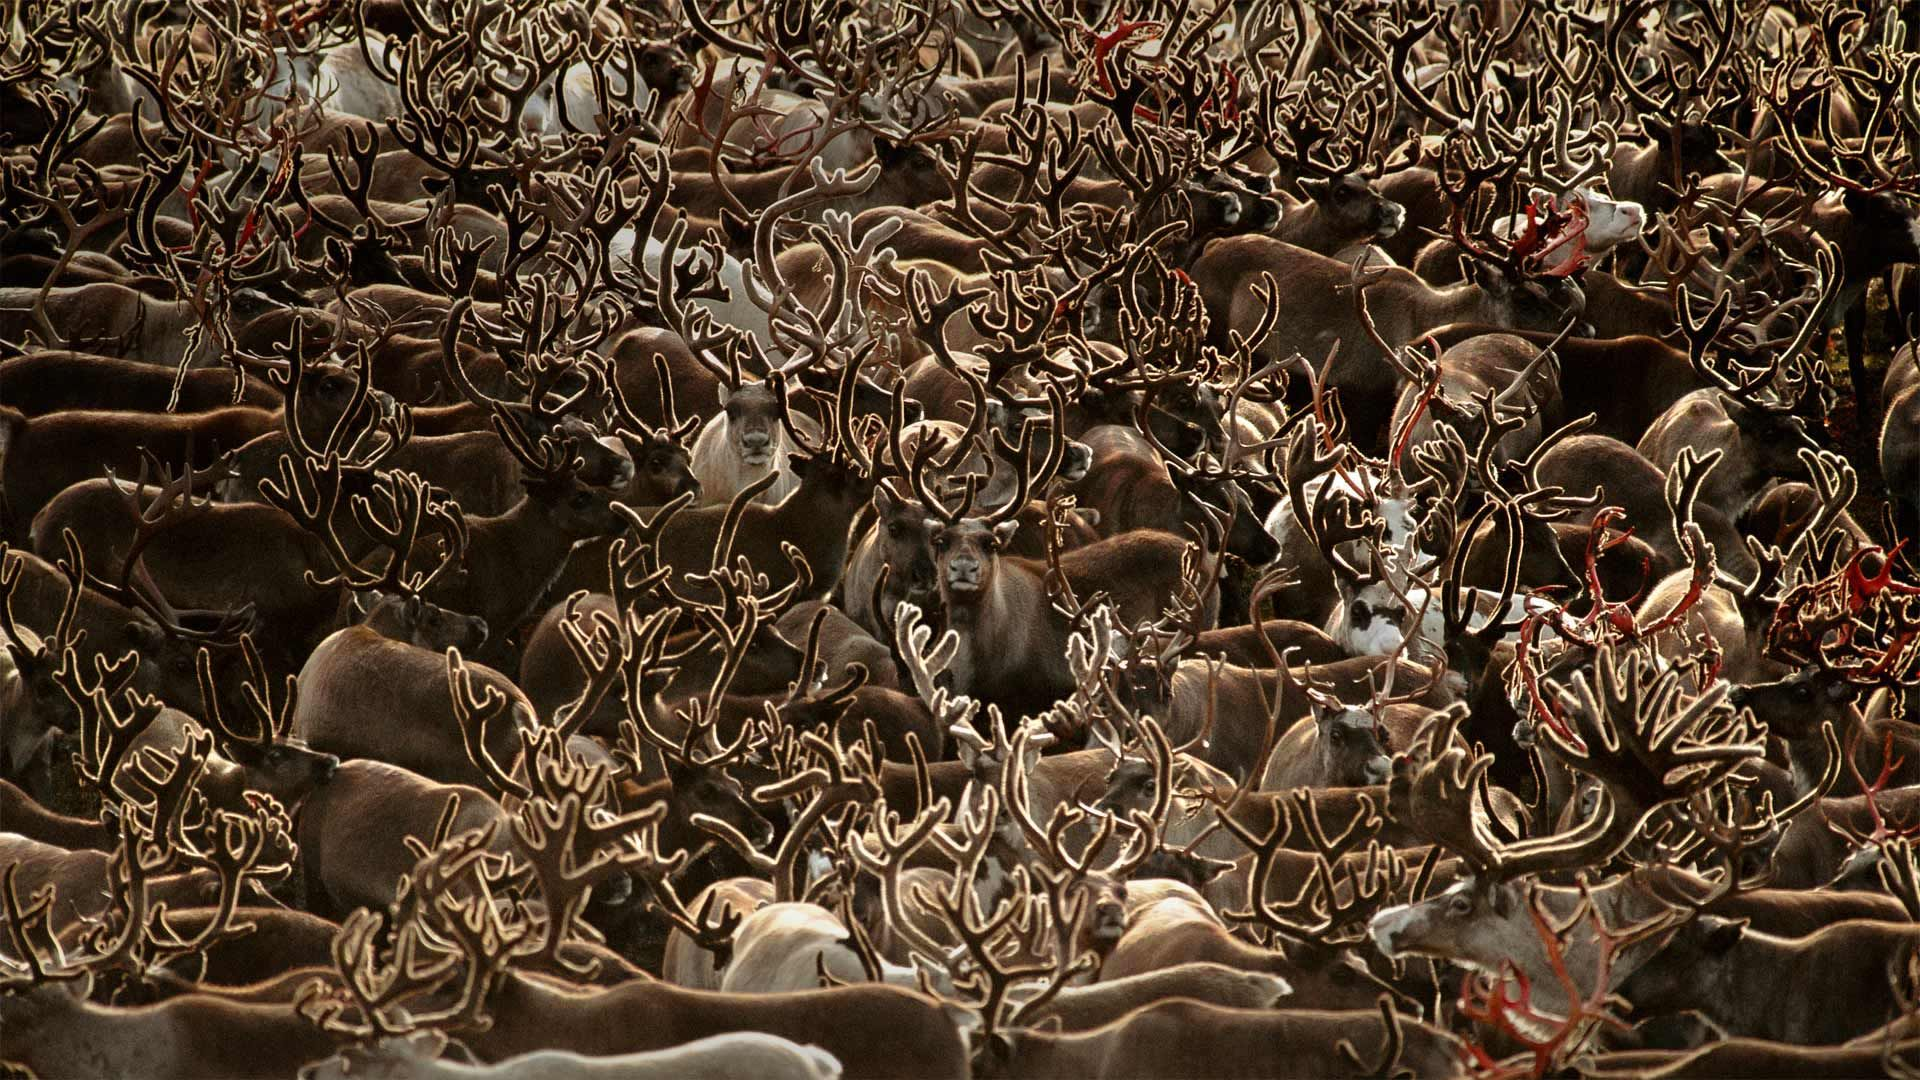 Caribou in Kobuk Valley National Park, Alaska